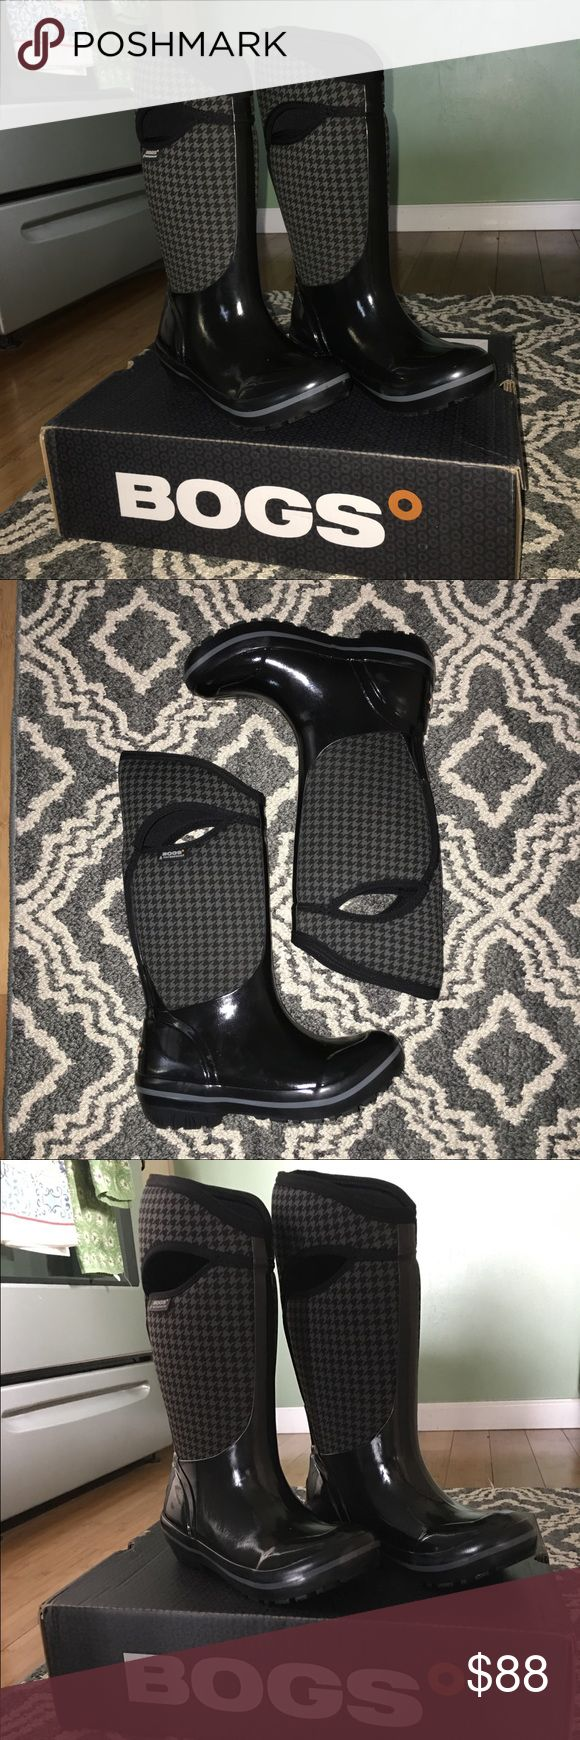 Bogs Boots ☔️ Black houndstooth Bogs Boots. NWT Bogs Shoes Winter & Rain Boots